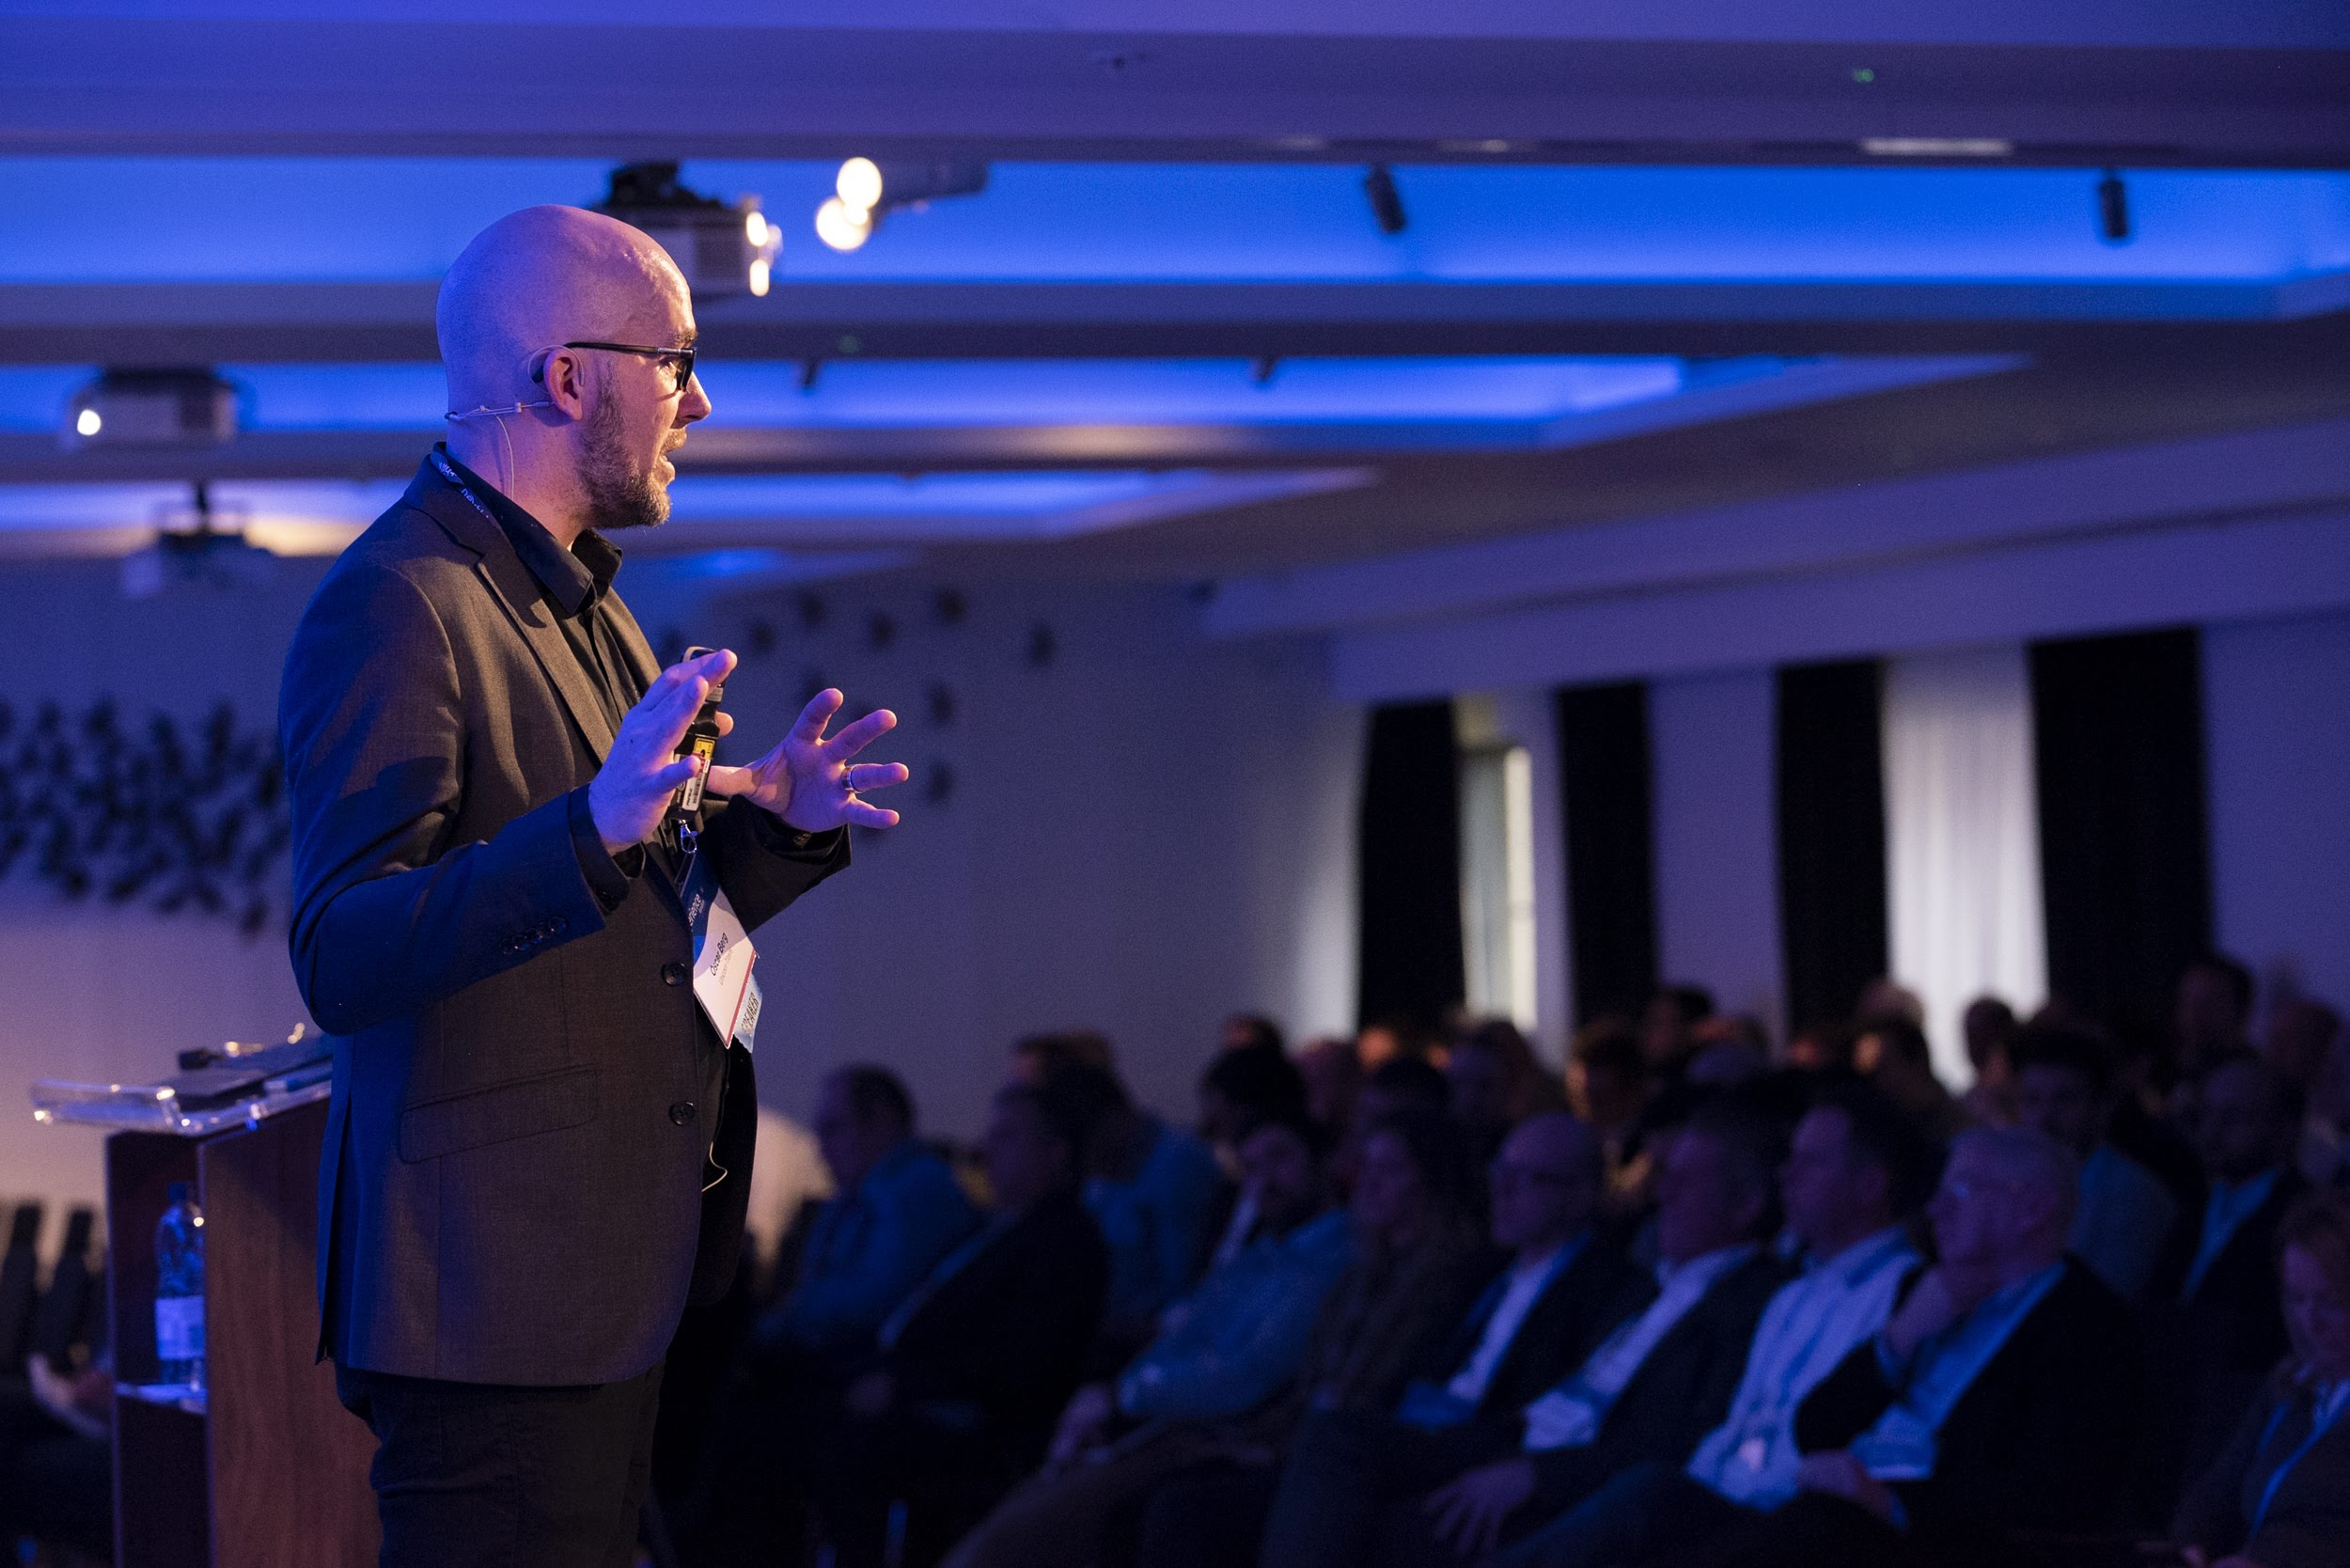 Speaking - Learn about digital transformation, the future of work, design as a strategy, and how to create superpowering experiences